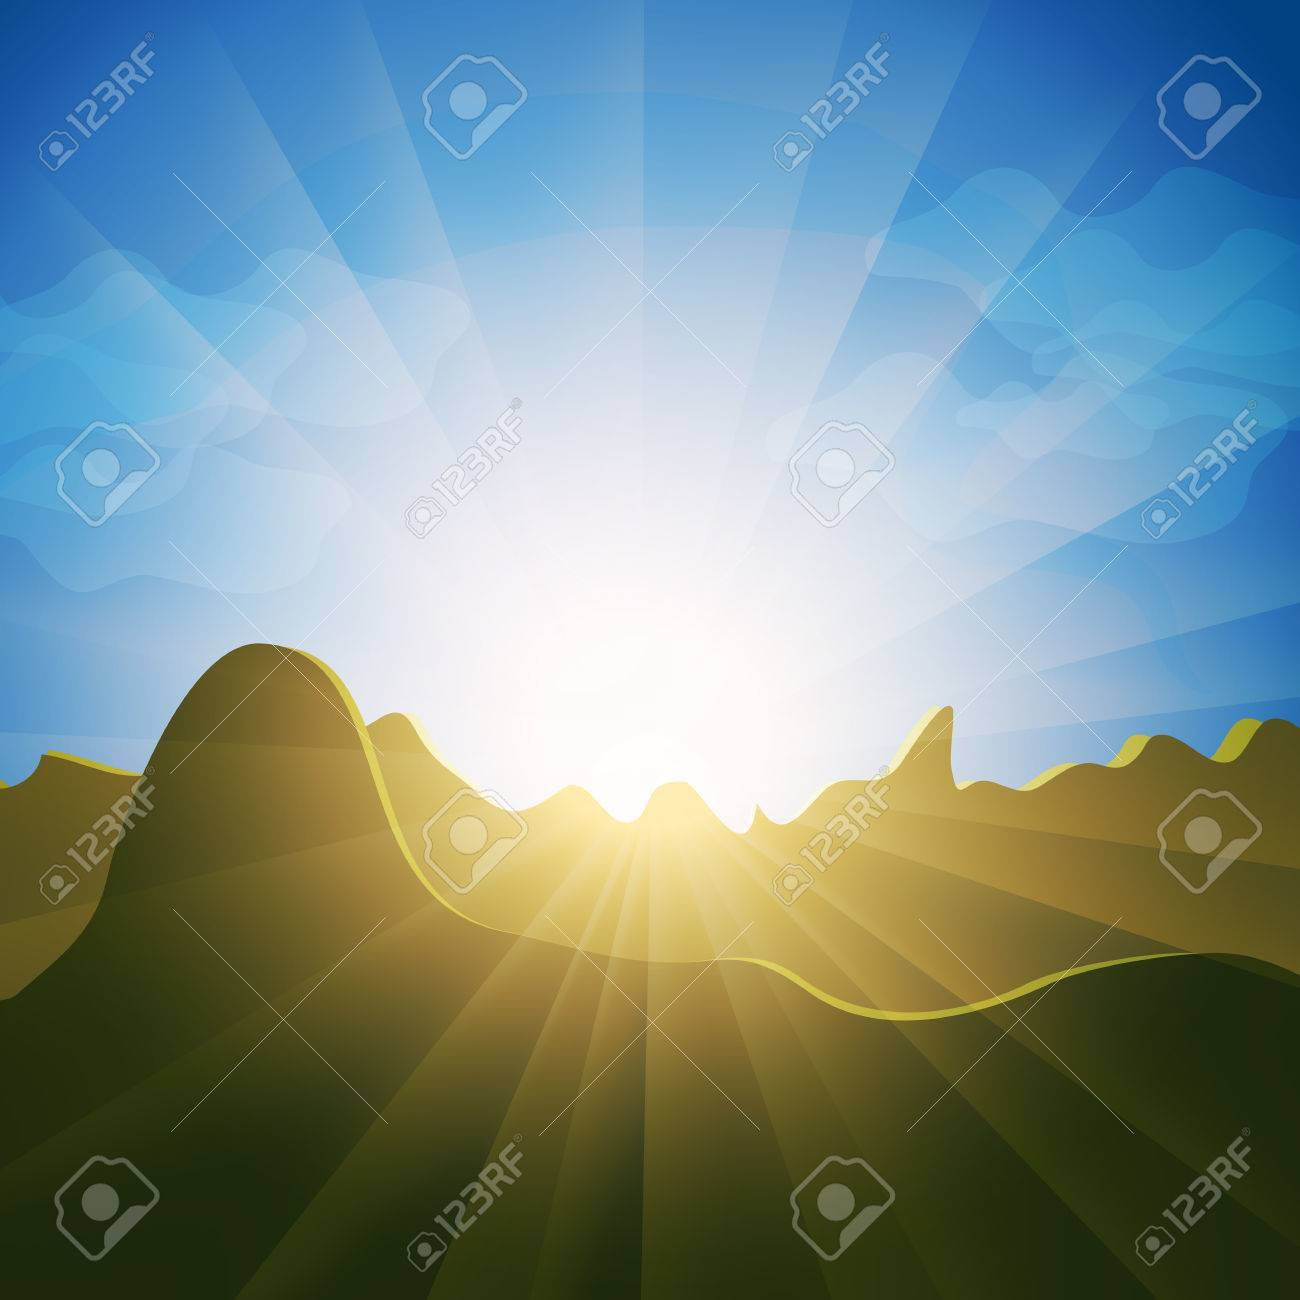 Sunburst rays shining over mountain range. Picturesque view of landscape on a sunny day with blue sky. Stock Vector - 8828814